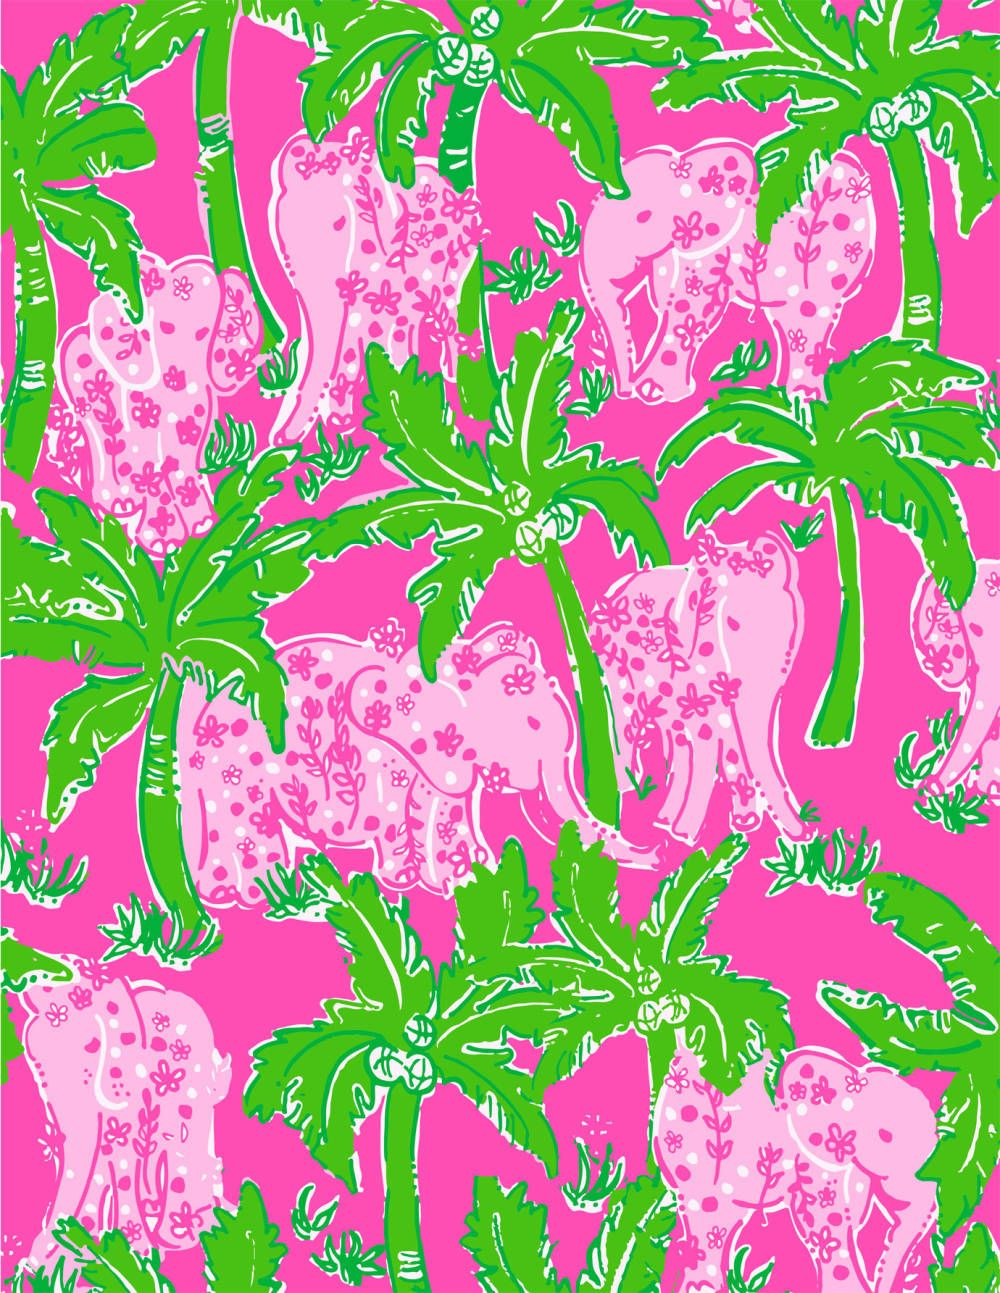 Lilly Pulitzer Fall Wallpaper 9 Of The Most Popular Lilly Pulitzer Prints From The Past